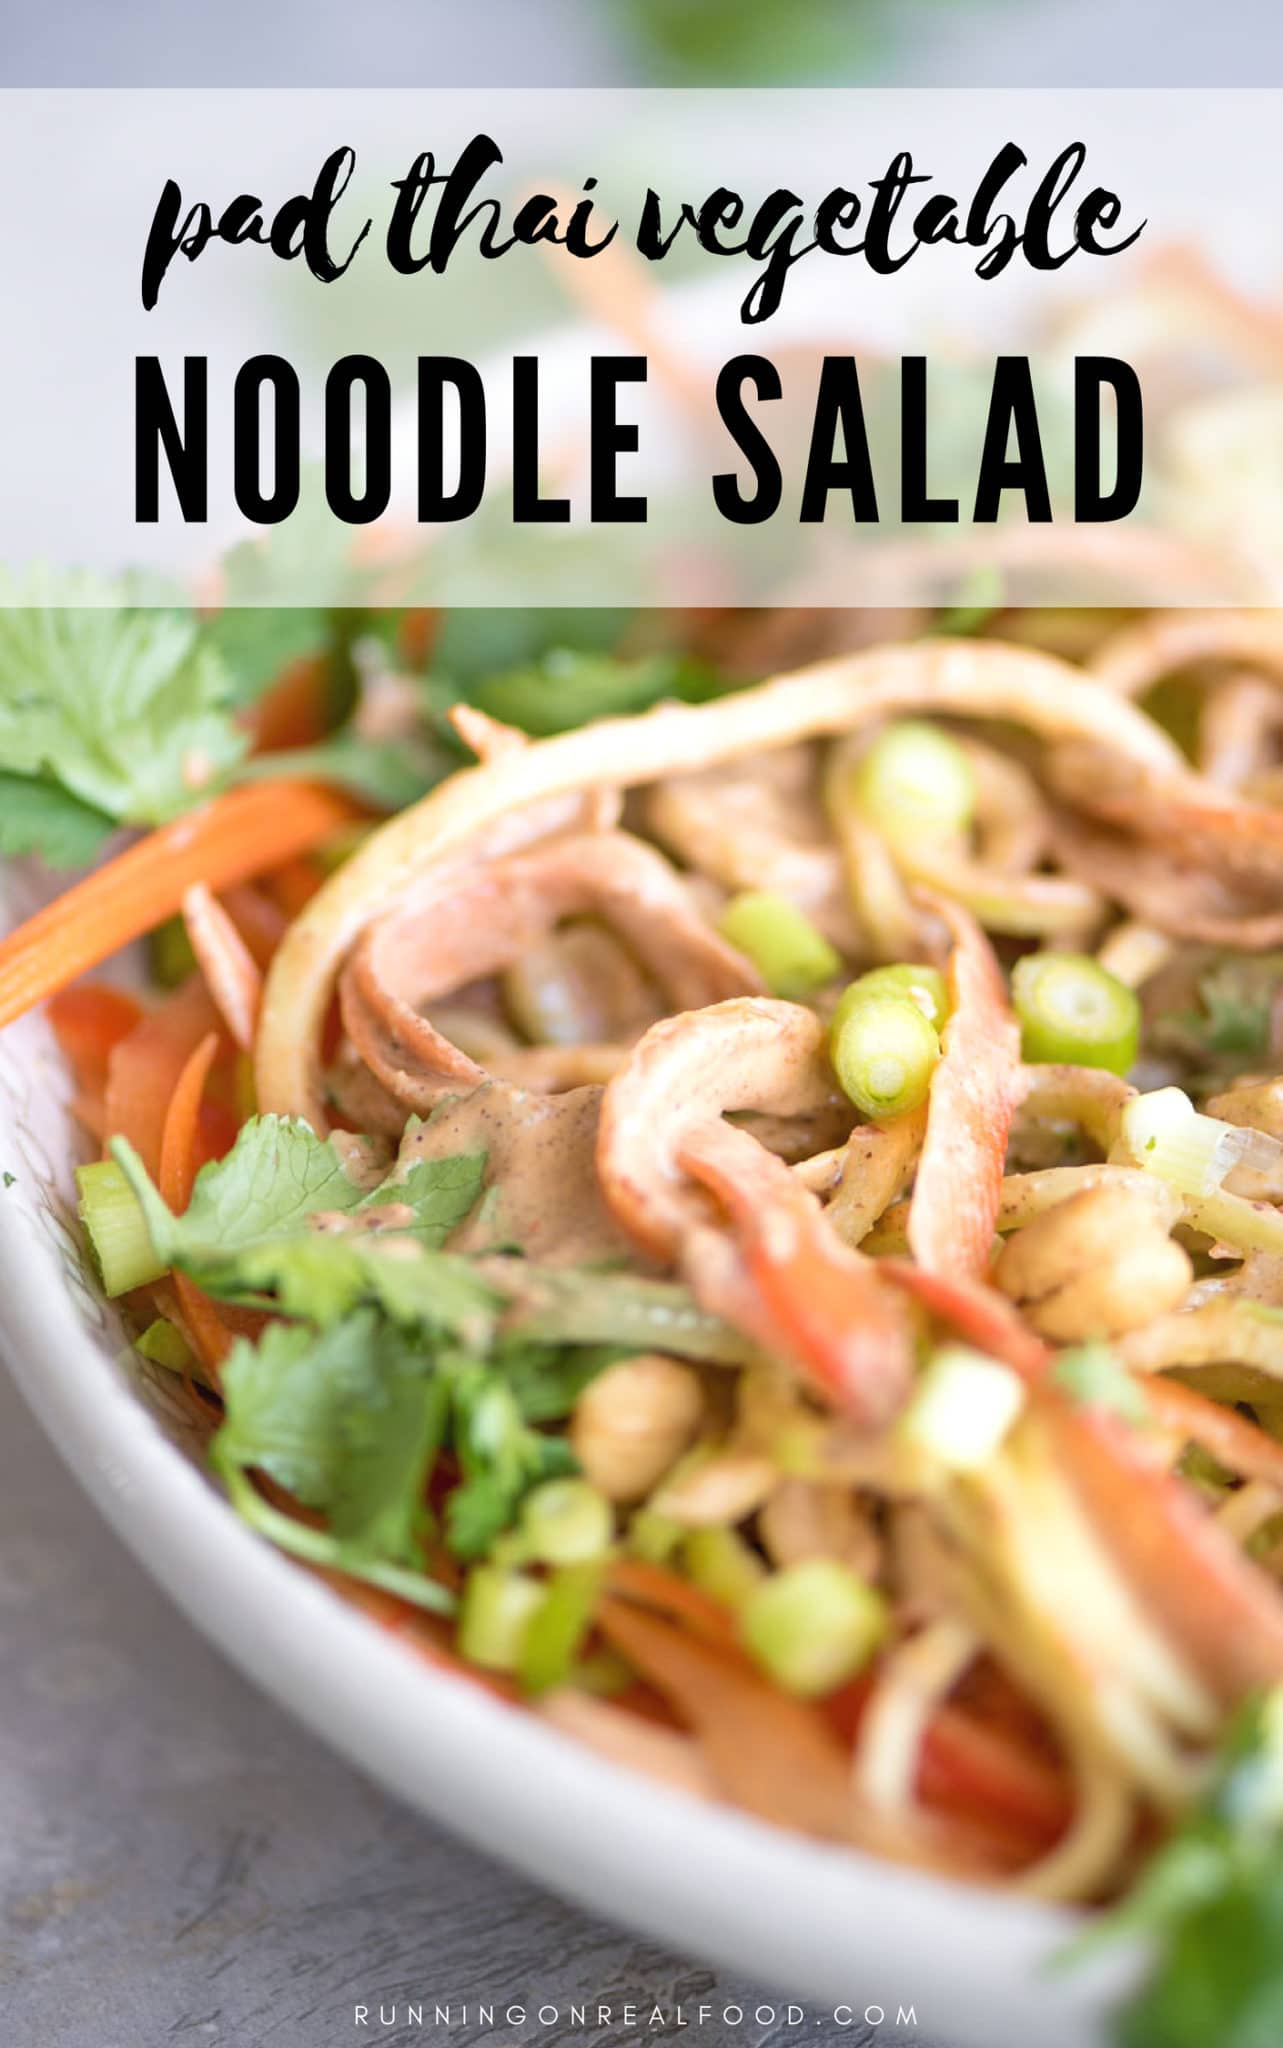 Try this vegan almond pad thai sauce served over zucchini and cucumber noodles with carrots, peppers, scallions, cilantro, lime and cashews for a healthy plant-based dinner. This recipe is vegan, oil-free and can be gluten-free.   #vegan #veganfood #veganrecipe #padthai #thaifood #asianrecipe #zoodles #healthyrecipe #food #dinneridea #zucchininoodles